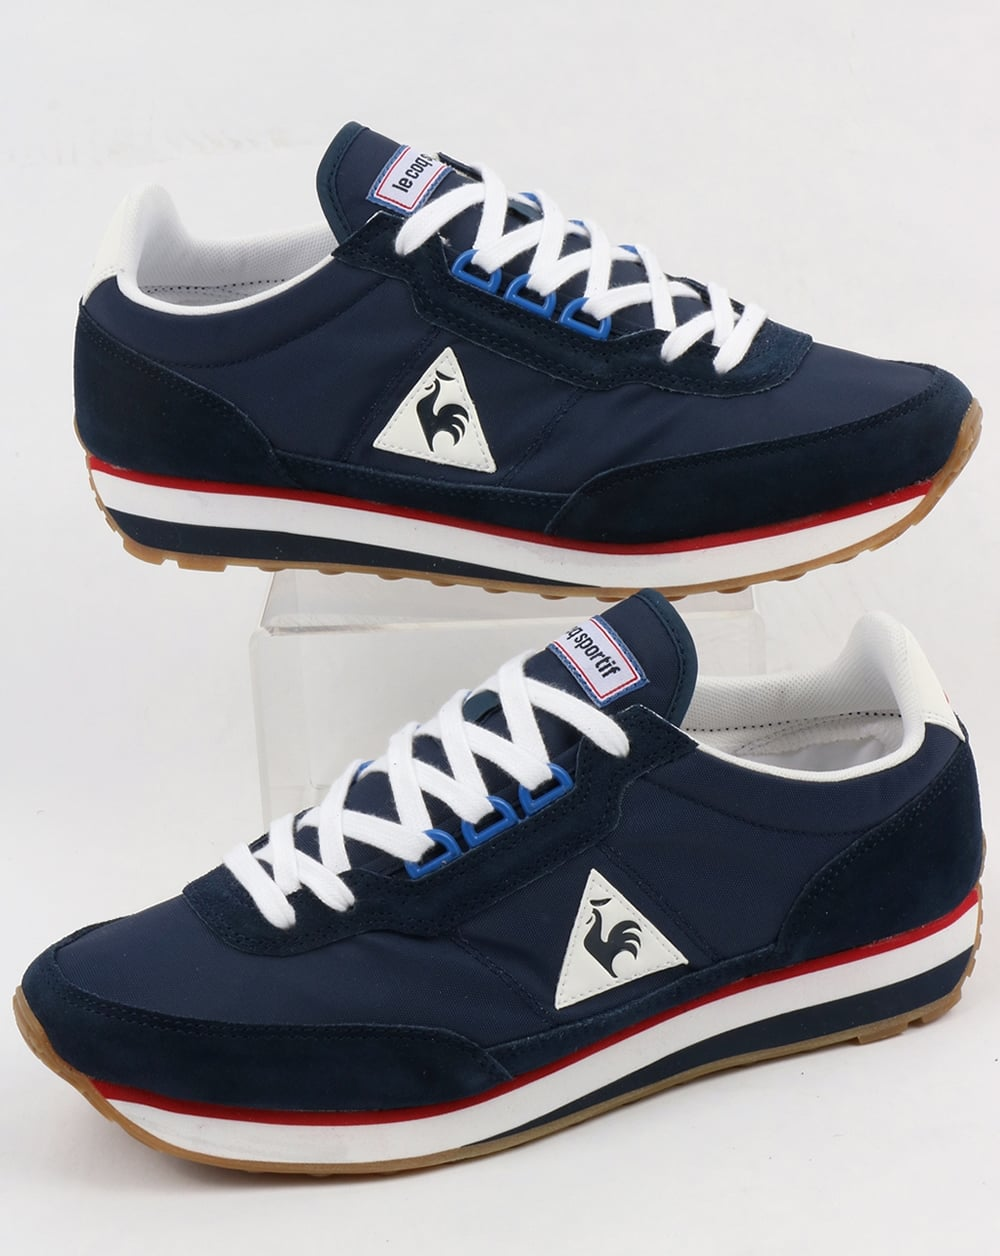 le coq sportif azstyle trainers navy red running lightweight shoes. Black Bedroom Furniture Sets. Home Design Ideas